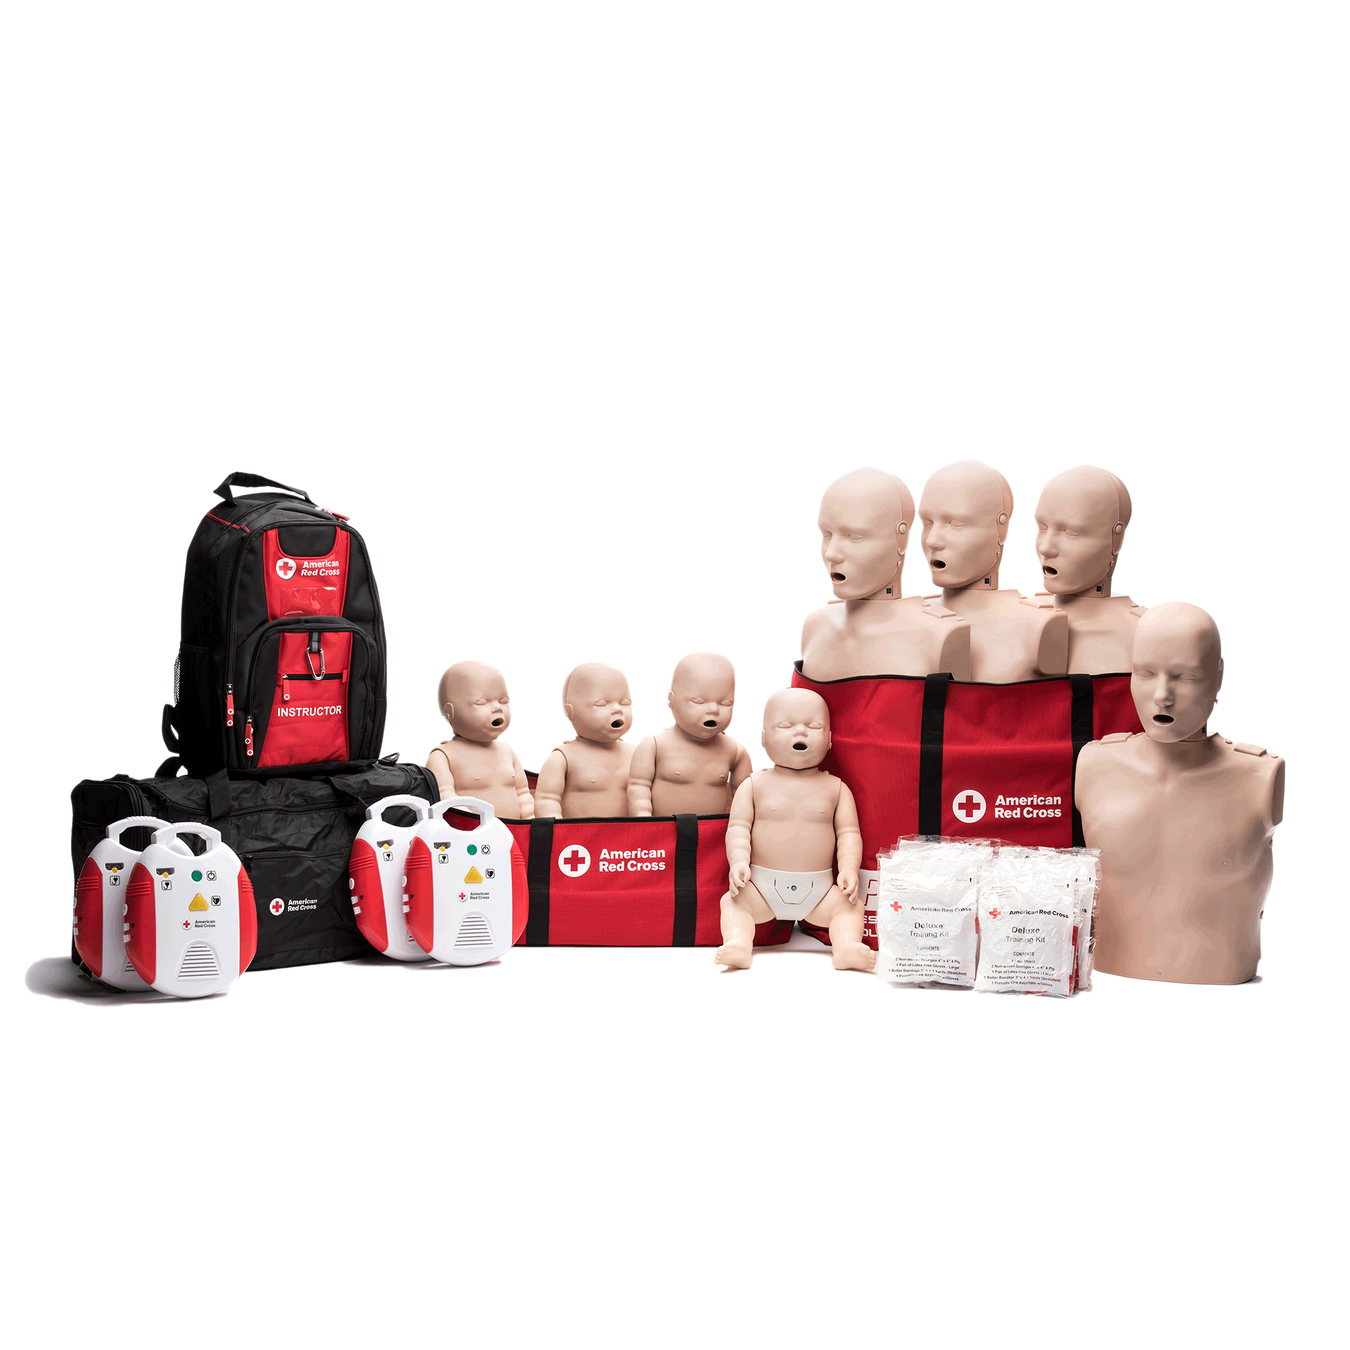 Class Redcross Orgsabawebmain: Instructor Starter Package With CPR Monitor And New AED